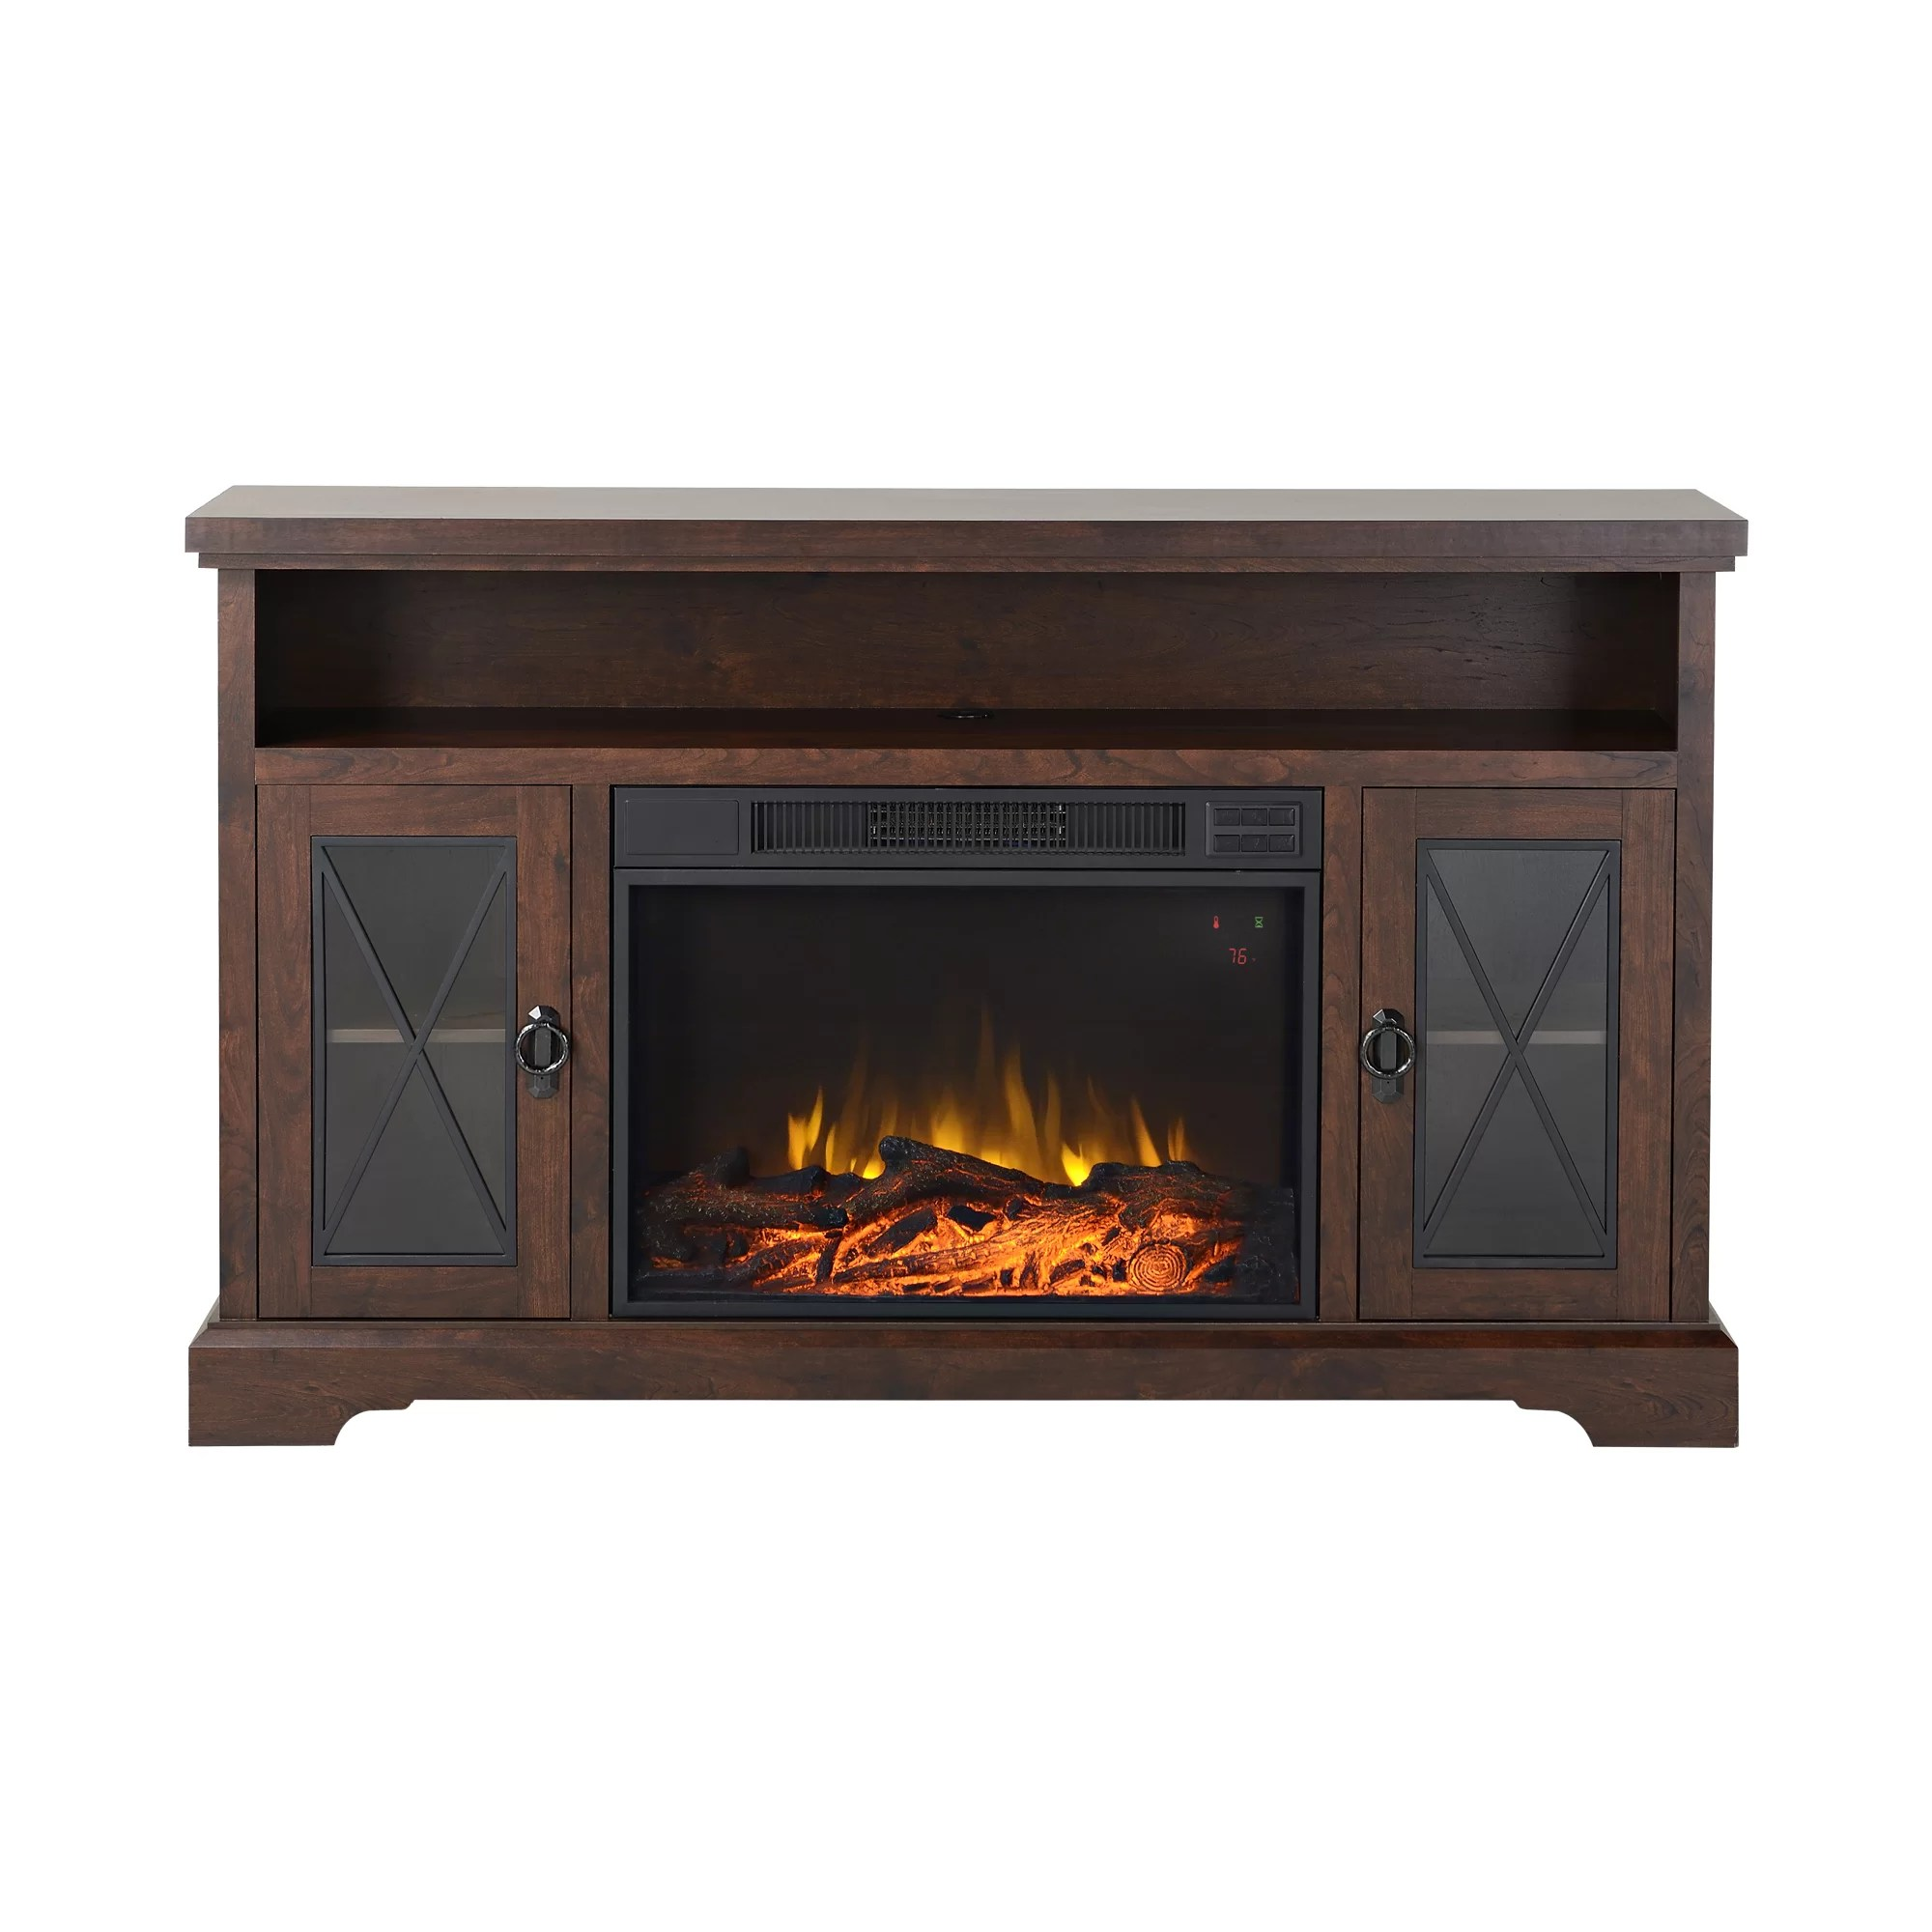 Homestar Padova TV Stand with Electric Fireplace  eBay